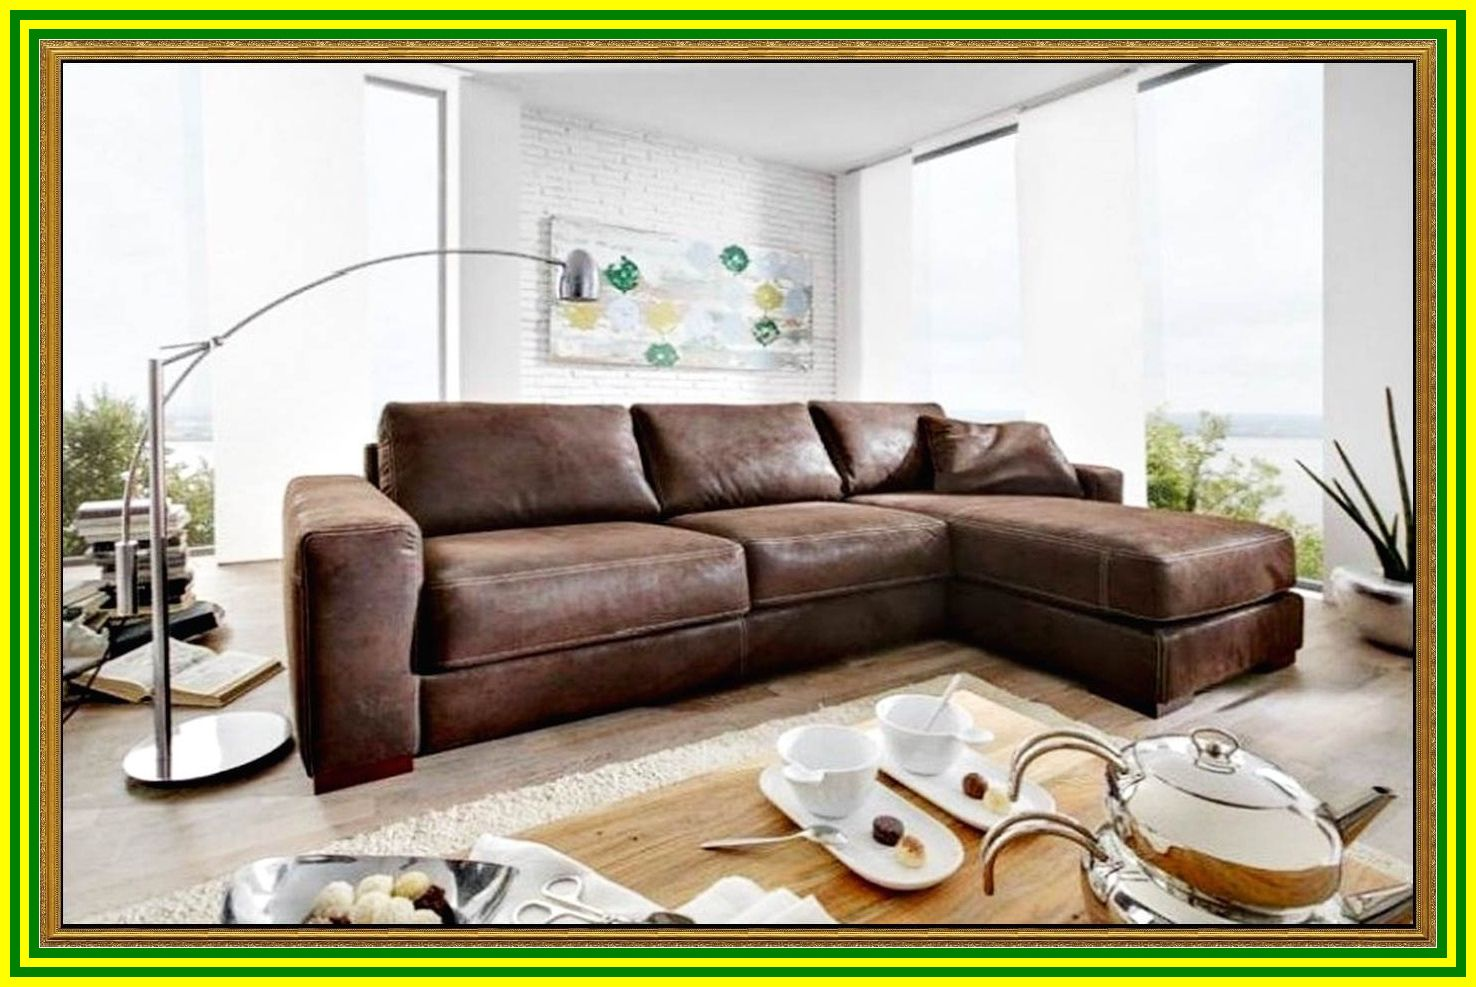 34 Reference Of Couch Braun Leder In 2020 Couch Velvet Couch Living Room Sofa